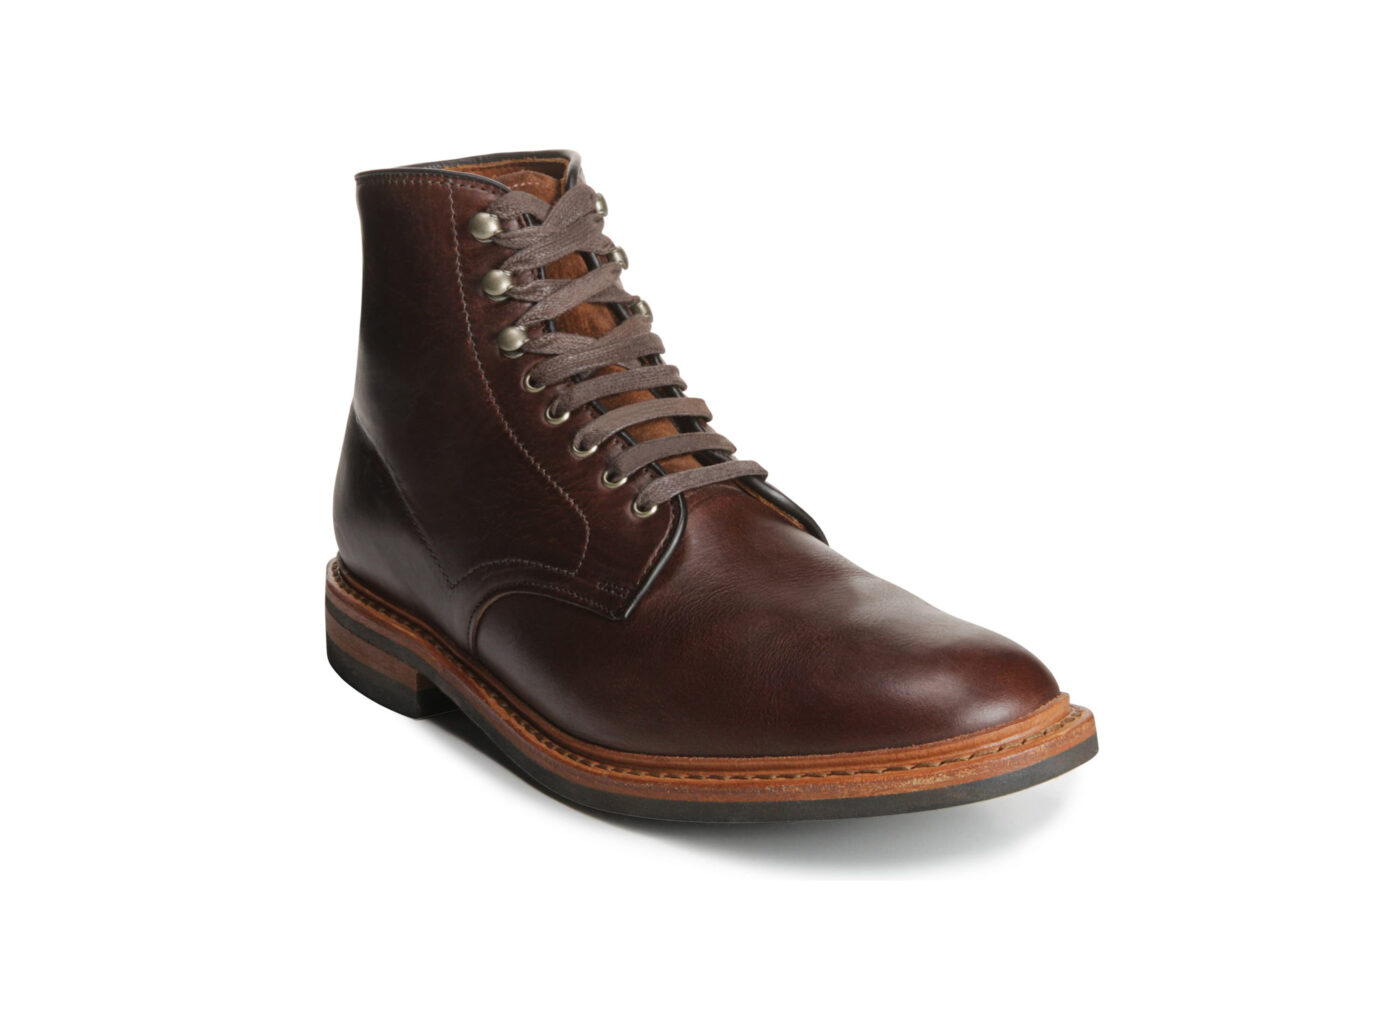 Allen Edmonds Higgins Mill Plain Toe Boot